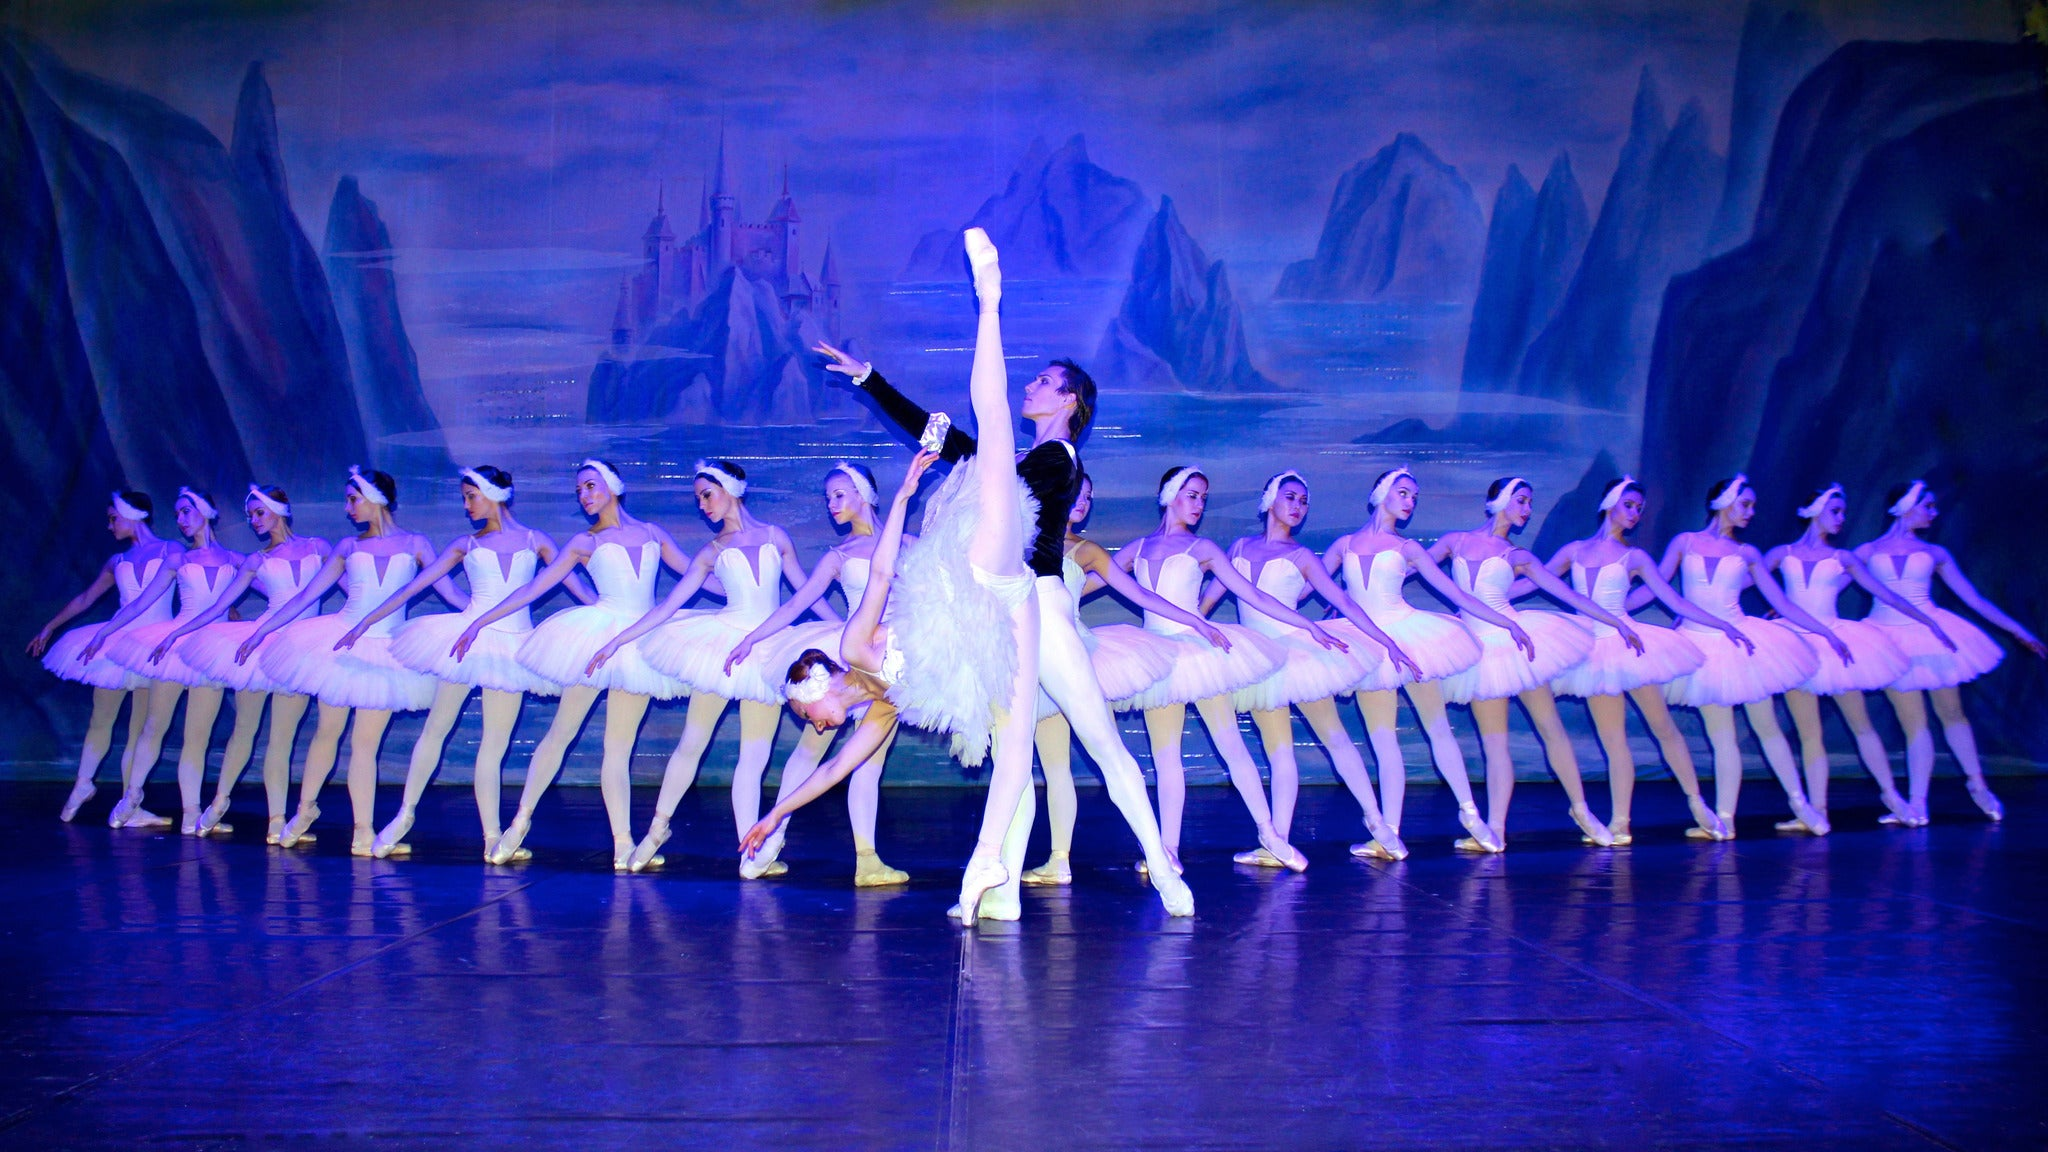 Swan Lake at National Theatre-DC - Washington, DC 20004